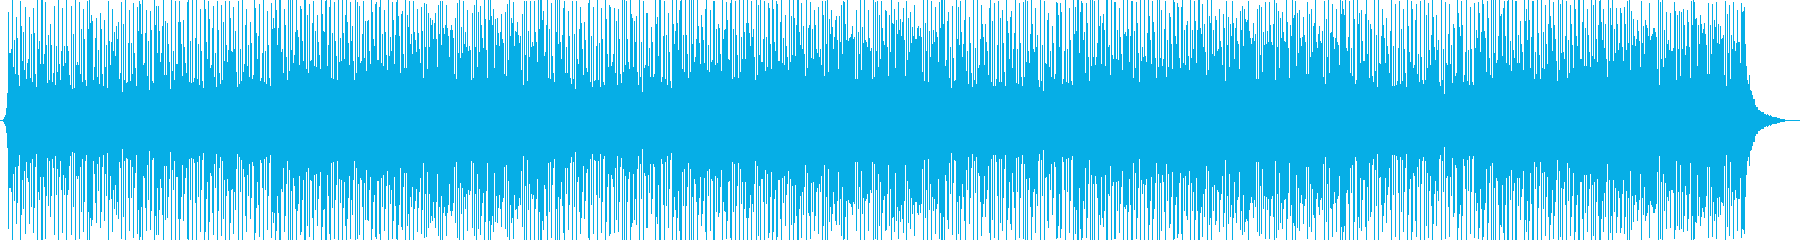 Company VP, company introduction, refreshing's reproduced waveform